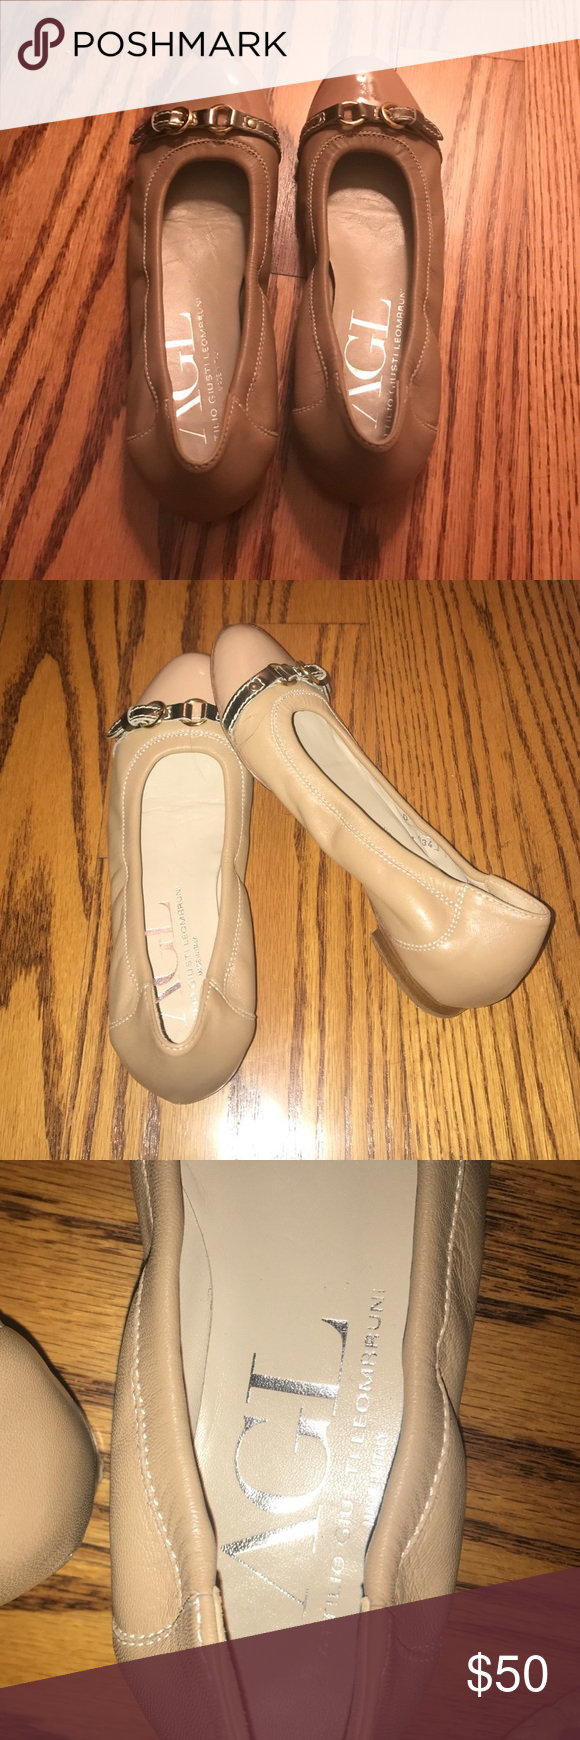 AGL ballet flats *MADE IN ITALY* Beige, leather ballet flats from Italian designer AGL (Attilio Giusti Leombruni). Soft & flexible. Lightly worn, great condition! AGL Shoes Flats & Loafers